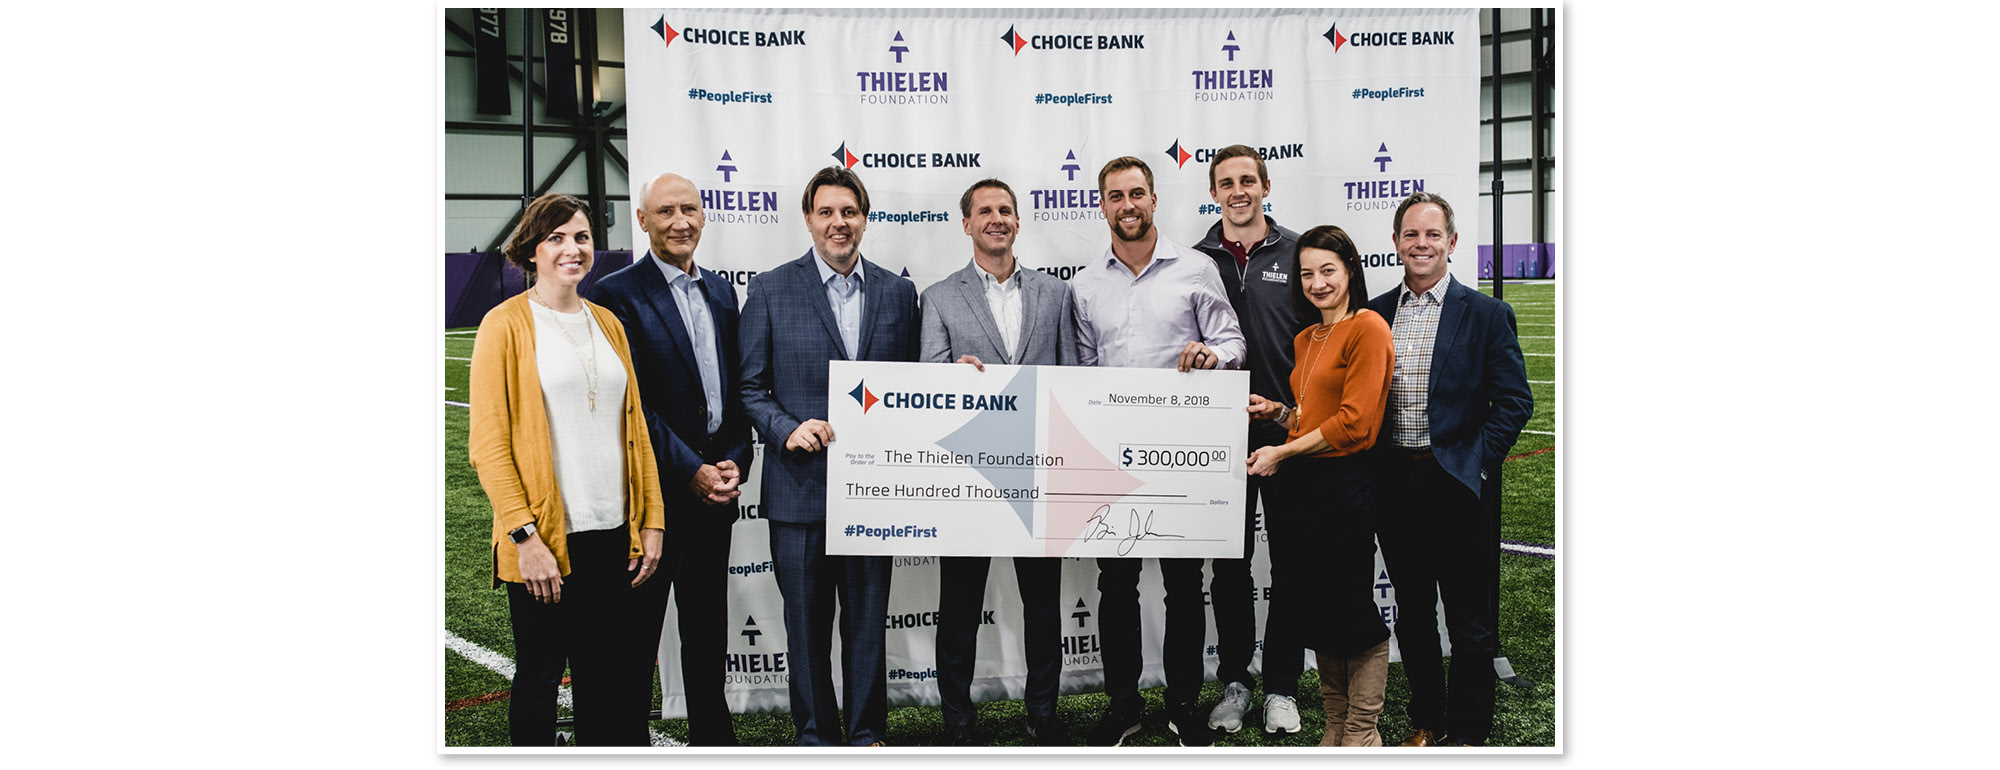 Choice Bank team members handing check for $300,000 to Adam Thielen and the The Thielen Foundation